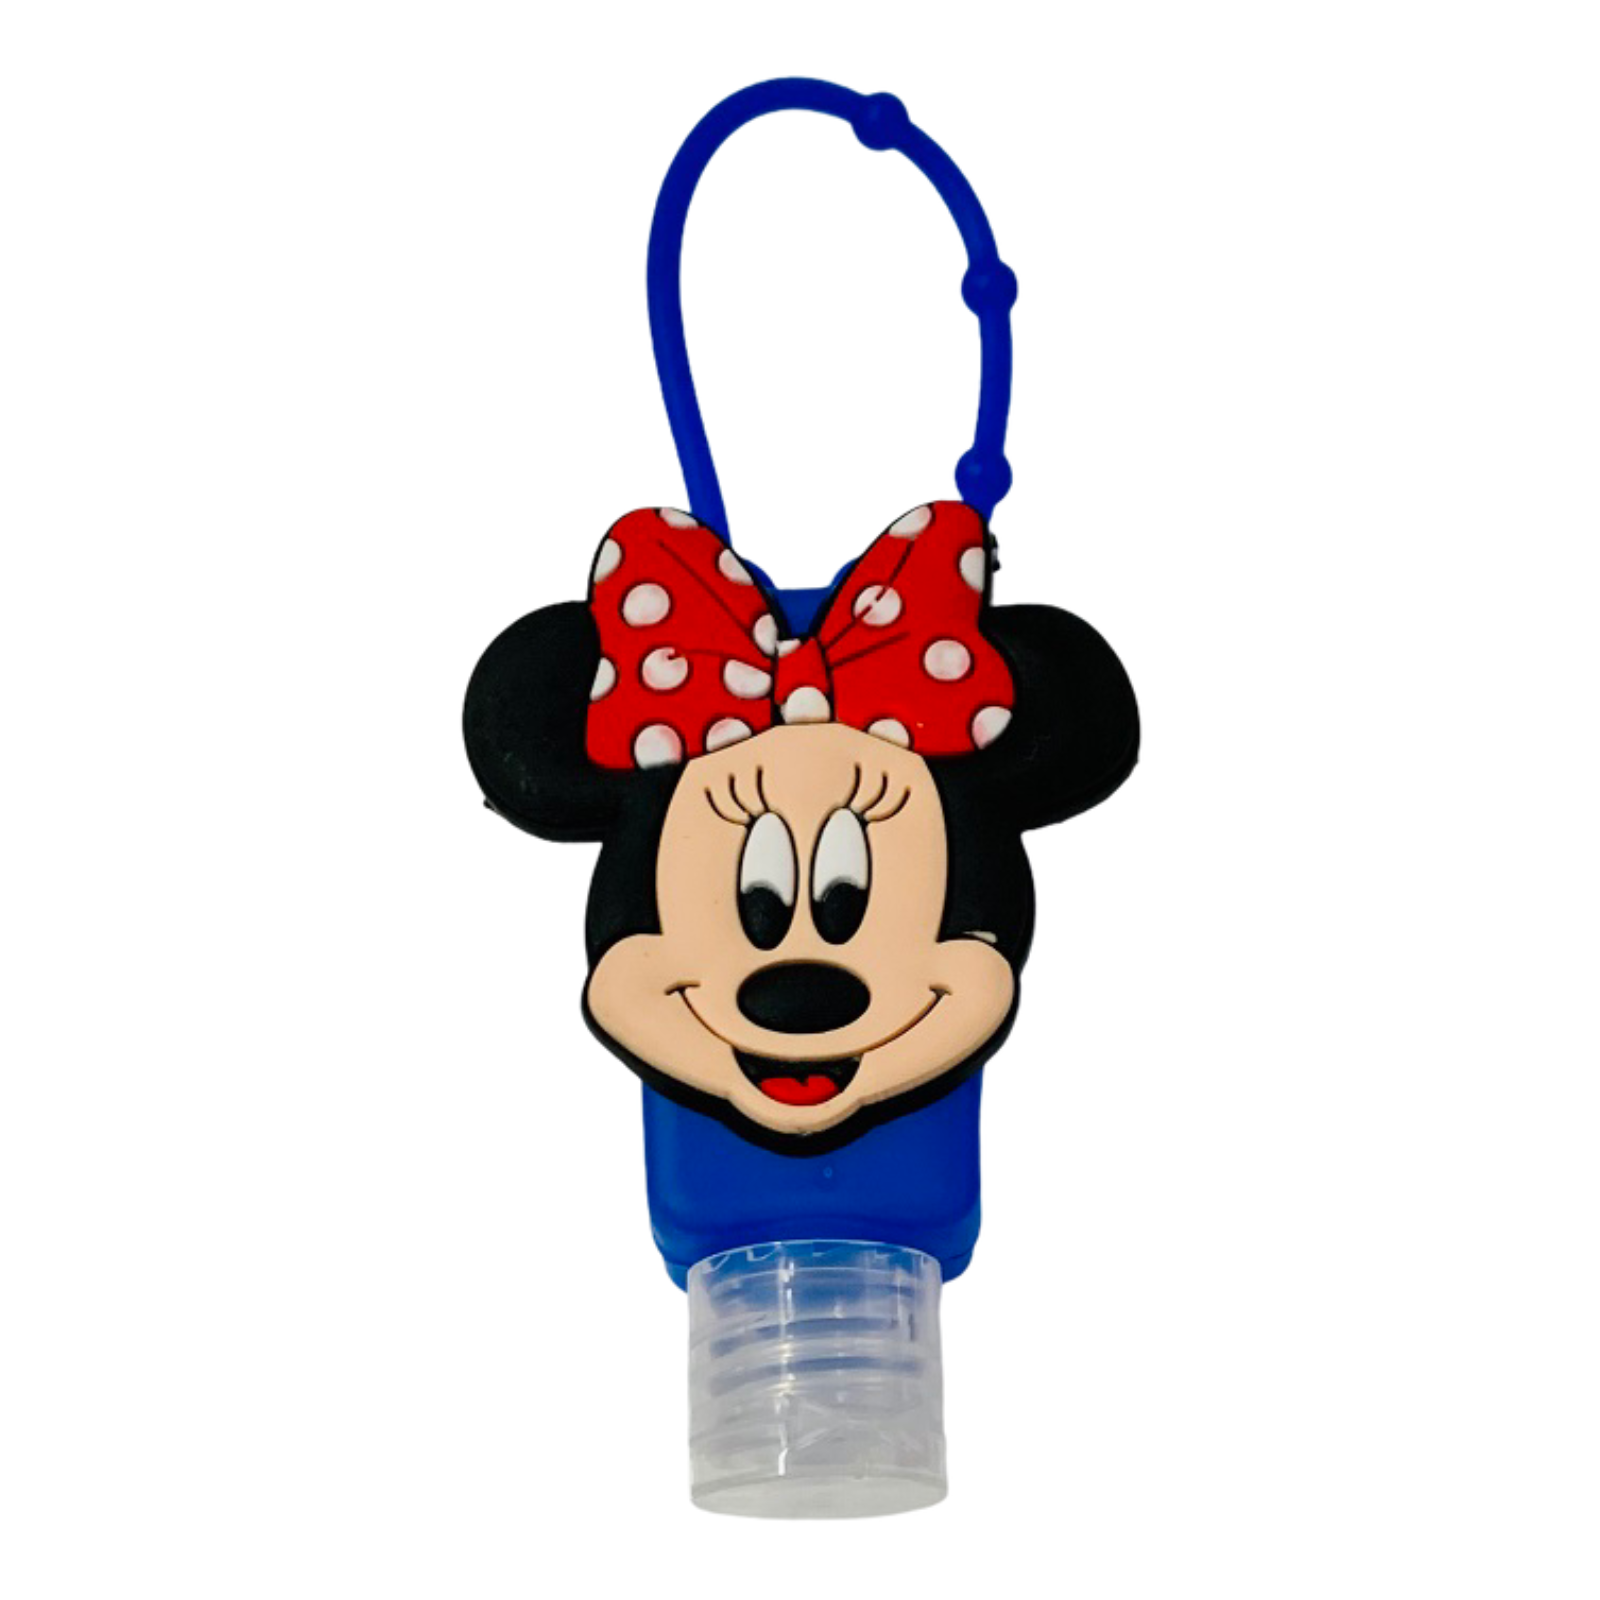 Silicone Bottle Holder for Mini 1oz Hand Sanitizer Minnie Mouse